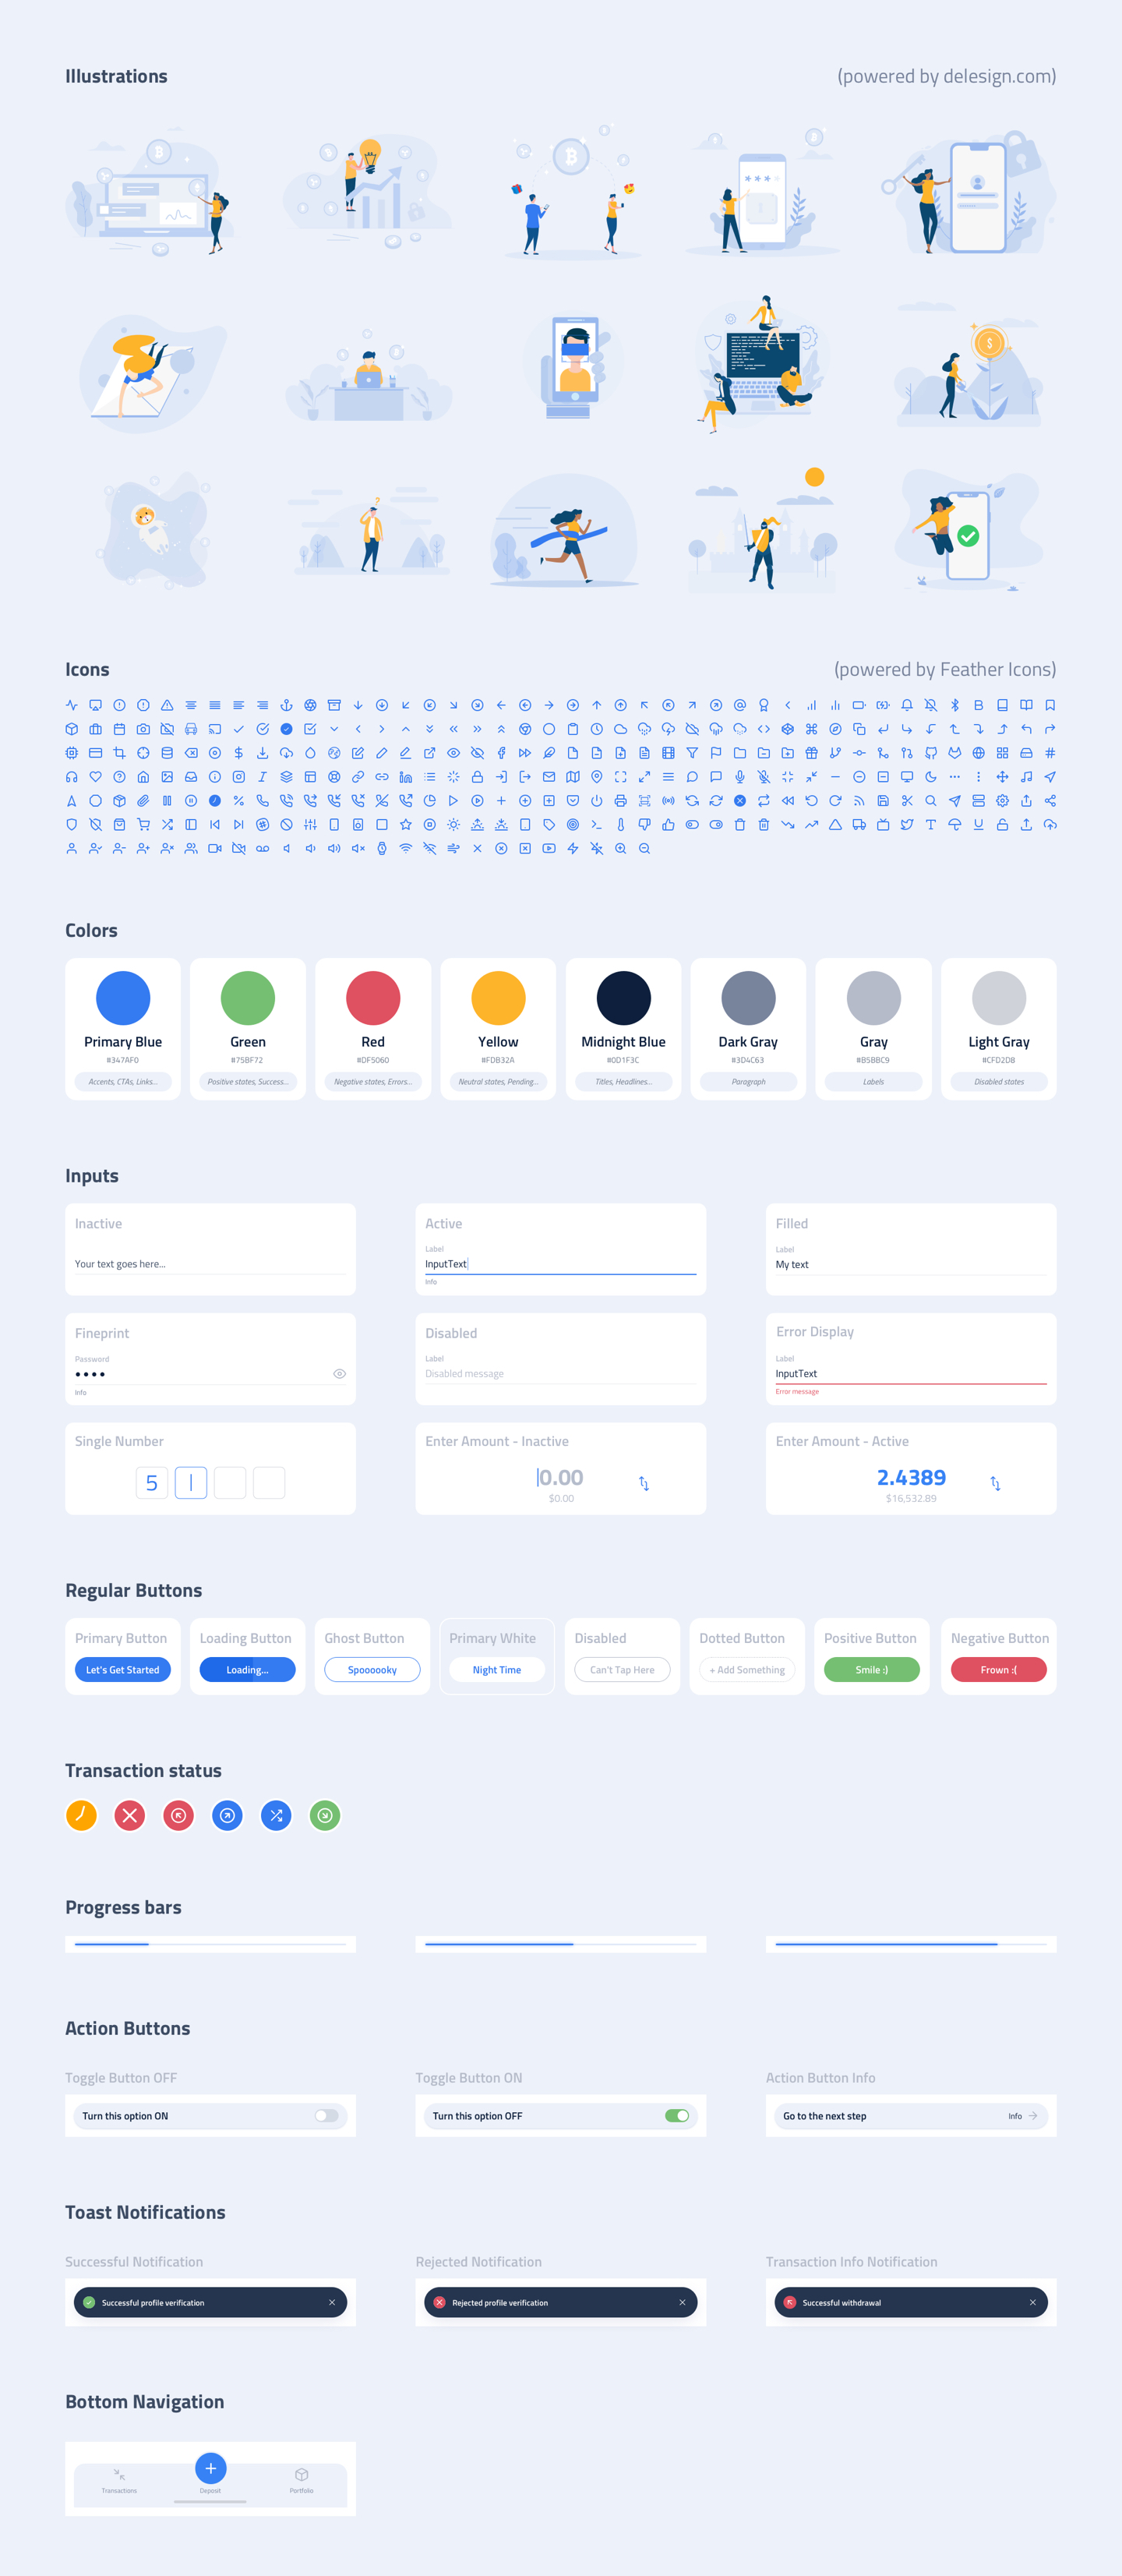 Whollet Crypto Wallet Free UI Kit - A comprehensive crypto wallet UI kit. A completely free resource for product developers / UI designers all over the world who want to use and help develop standardized crypto wallet interactions and design patterns.